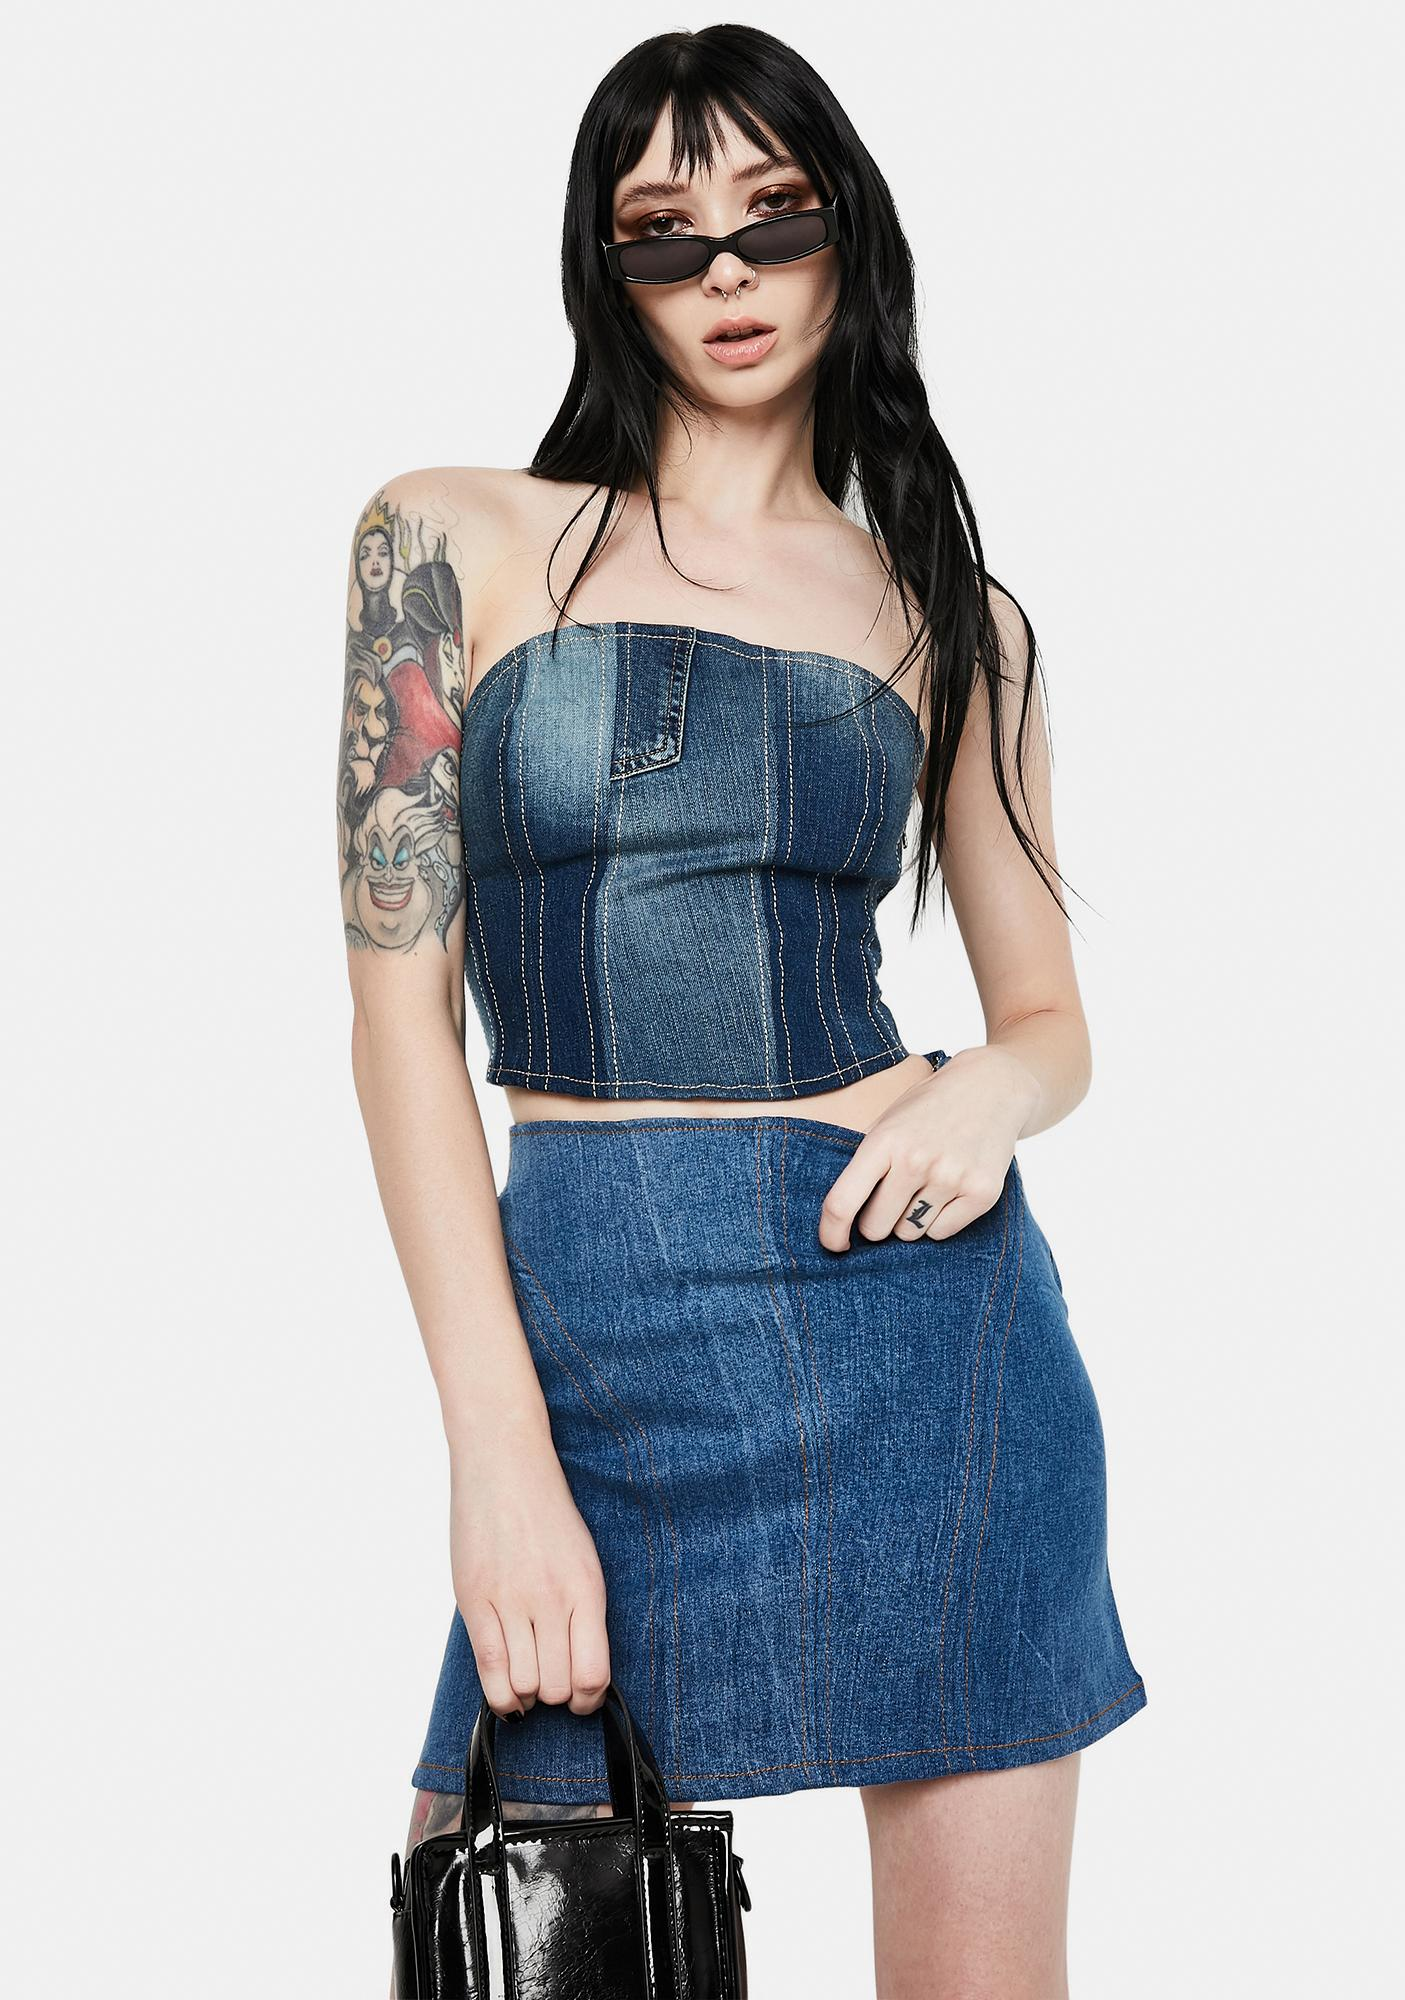 Kiki Riki Wishful Thinking Denim Mini Skirt